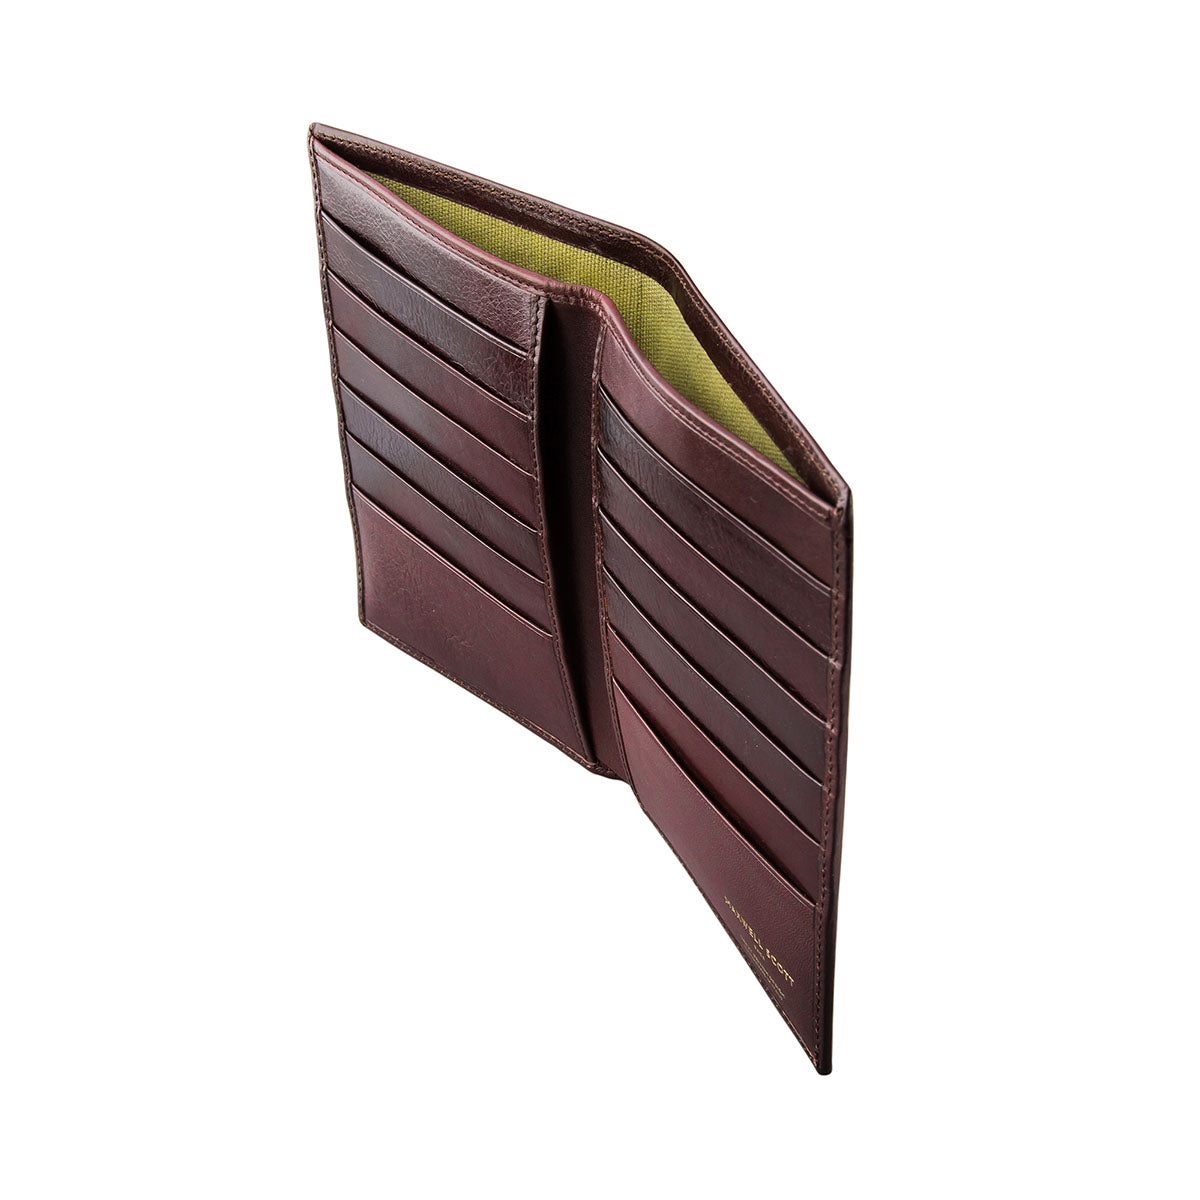 Image 3 of the 'Pianillo' Dark Chocolate Veg-Tanned Leather Breast Wallet